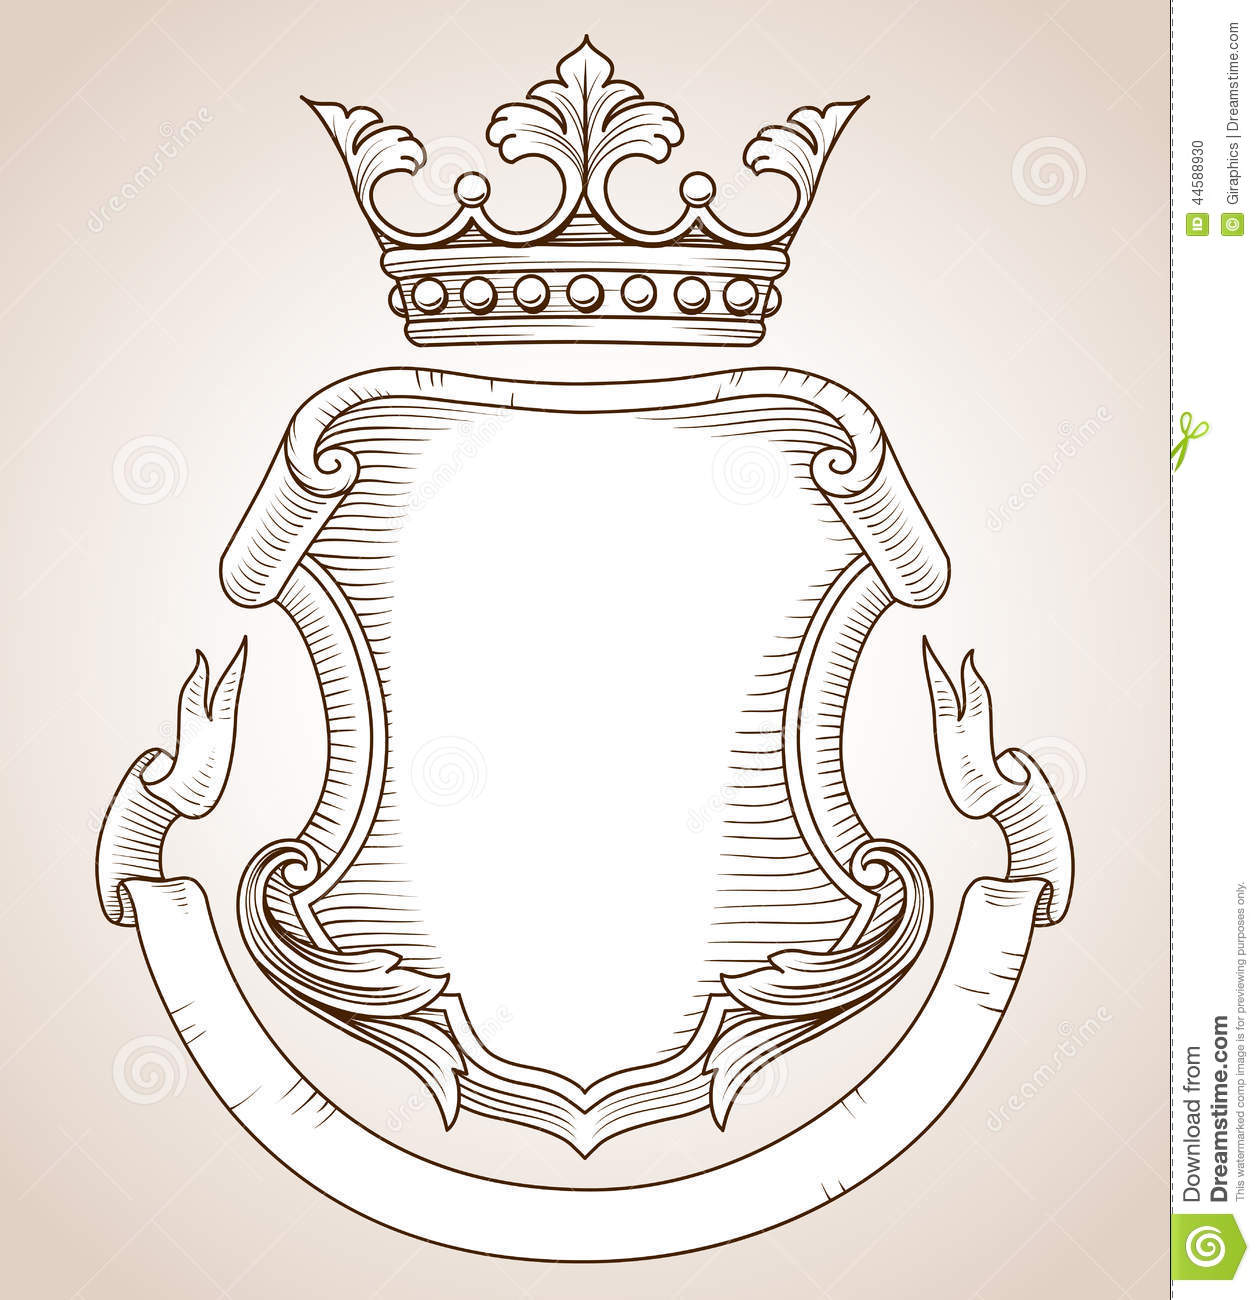 coat of arms stock vector illustration of floral scroll 44588930